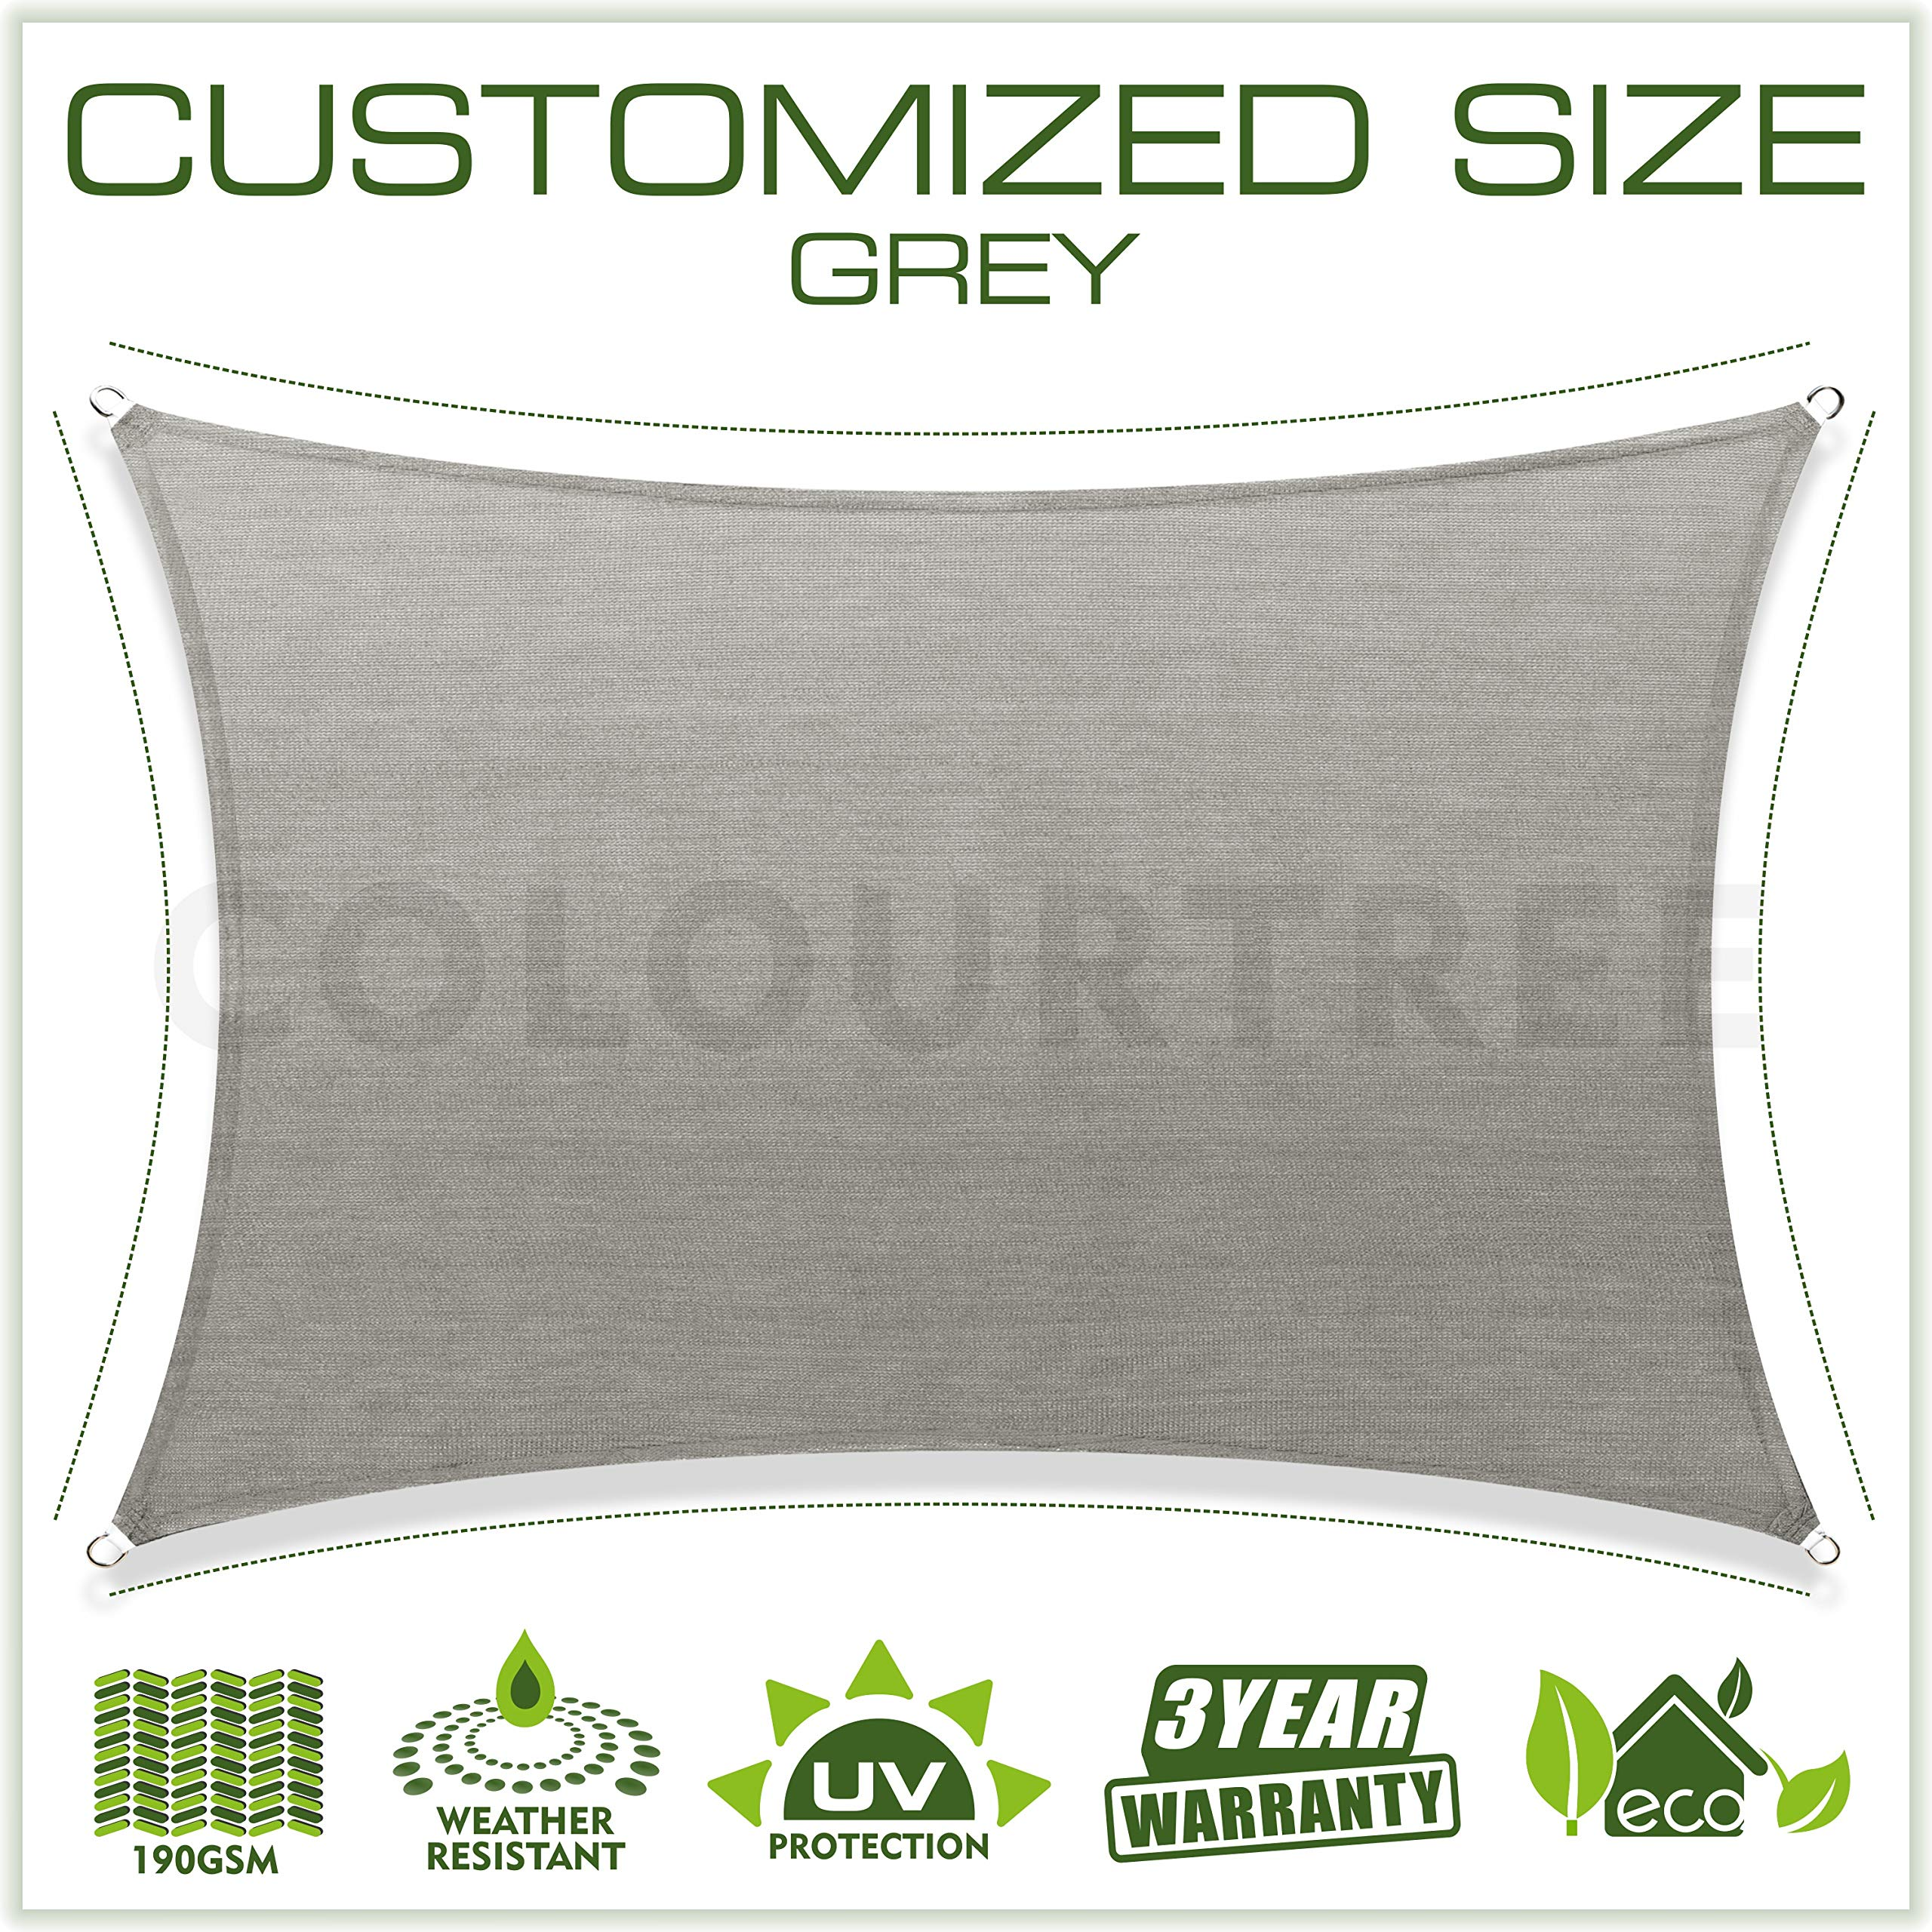 ColourTree Customized Size 8' x 24' Grey Sun Shade Sail Canopy UV Block Rectangle - Commercial Standard Heavy Duty - 190 GSM - 3 Years Warranty